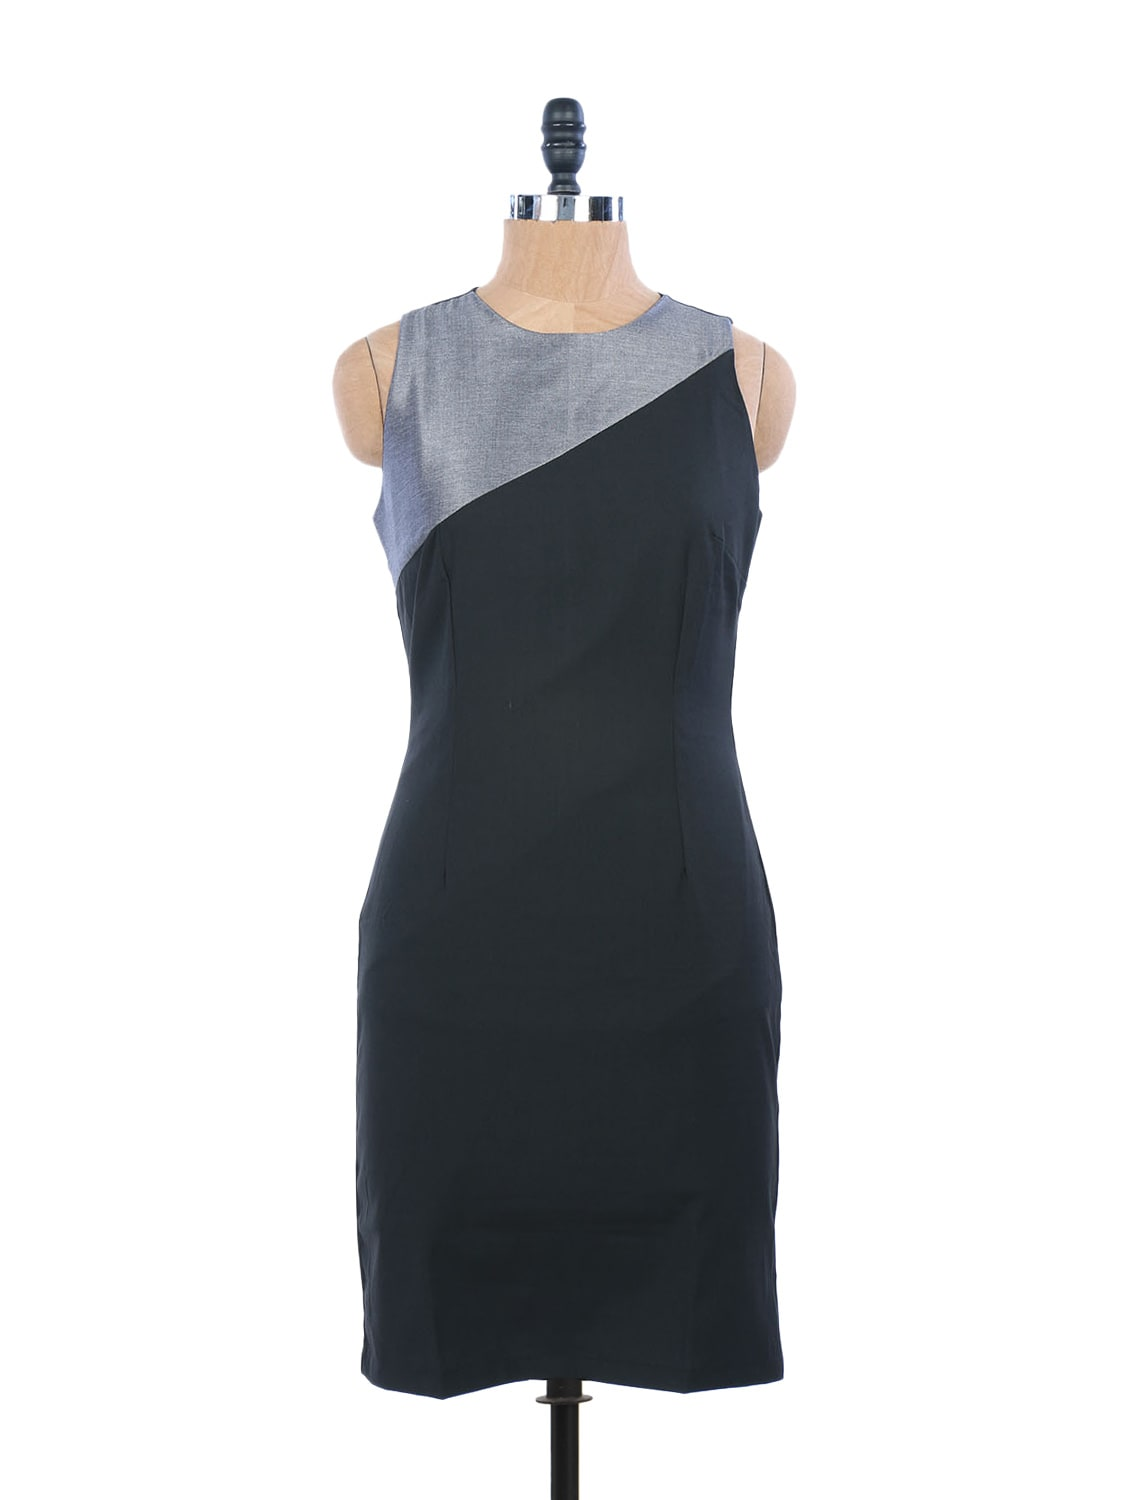 Black Summer Dress With A Back Slit And Grey Neck - EIGHTEEN27